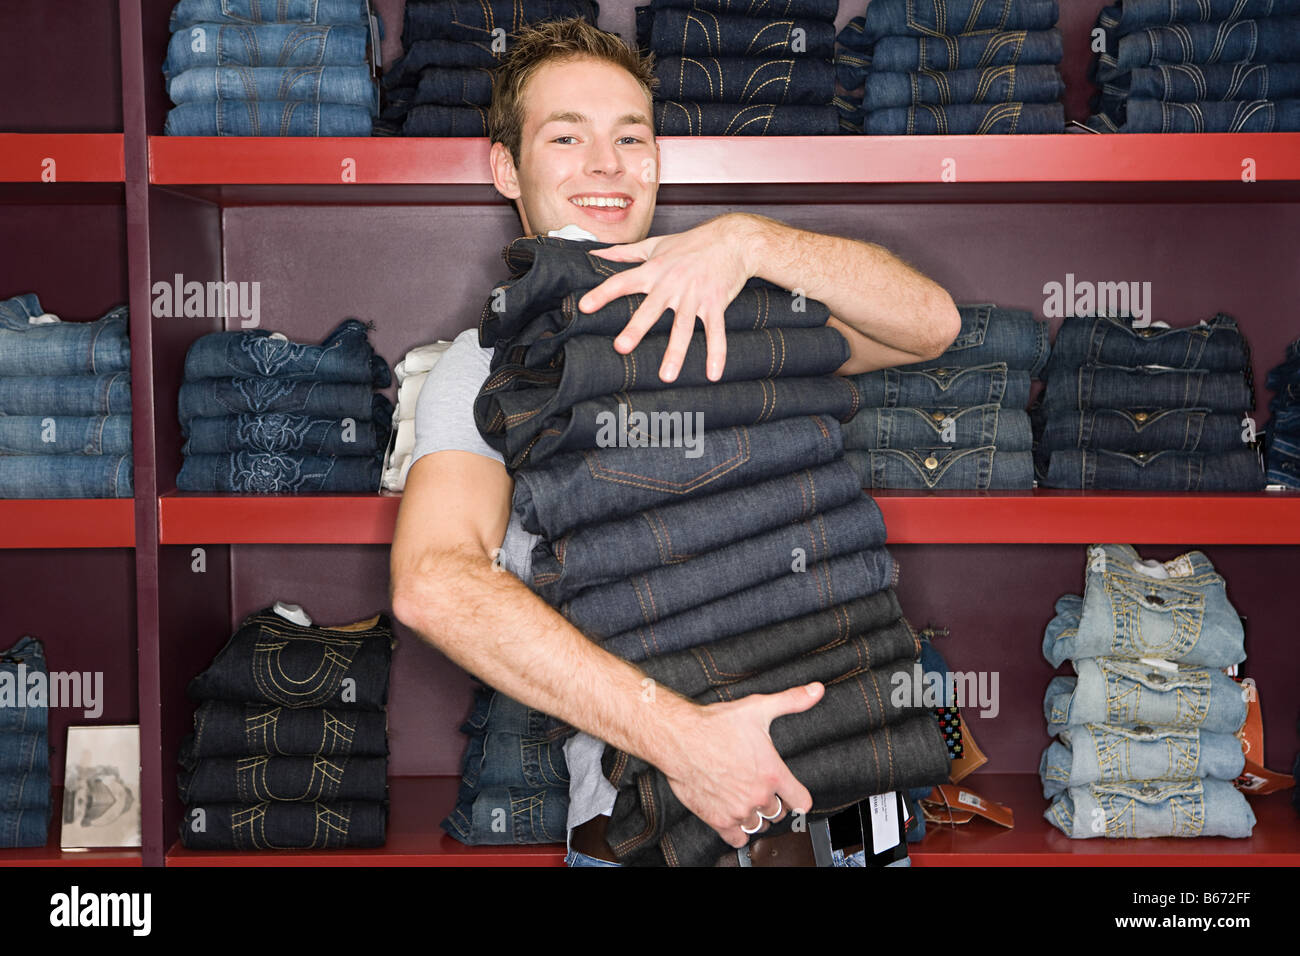 Homme tenant une pile de jeans Photo Stock